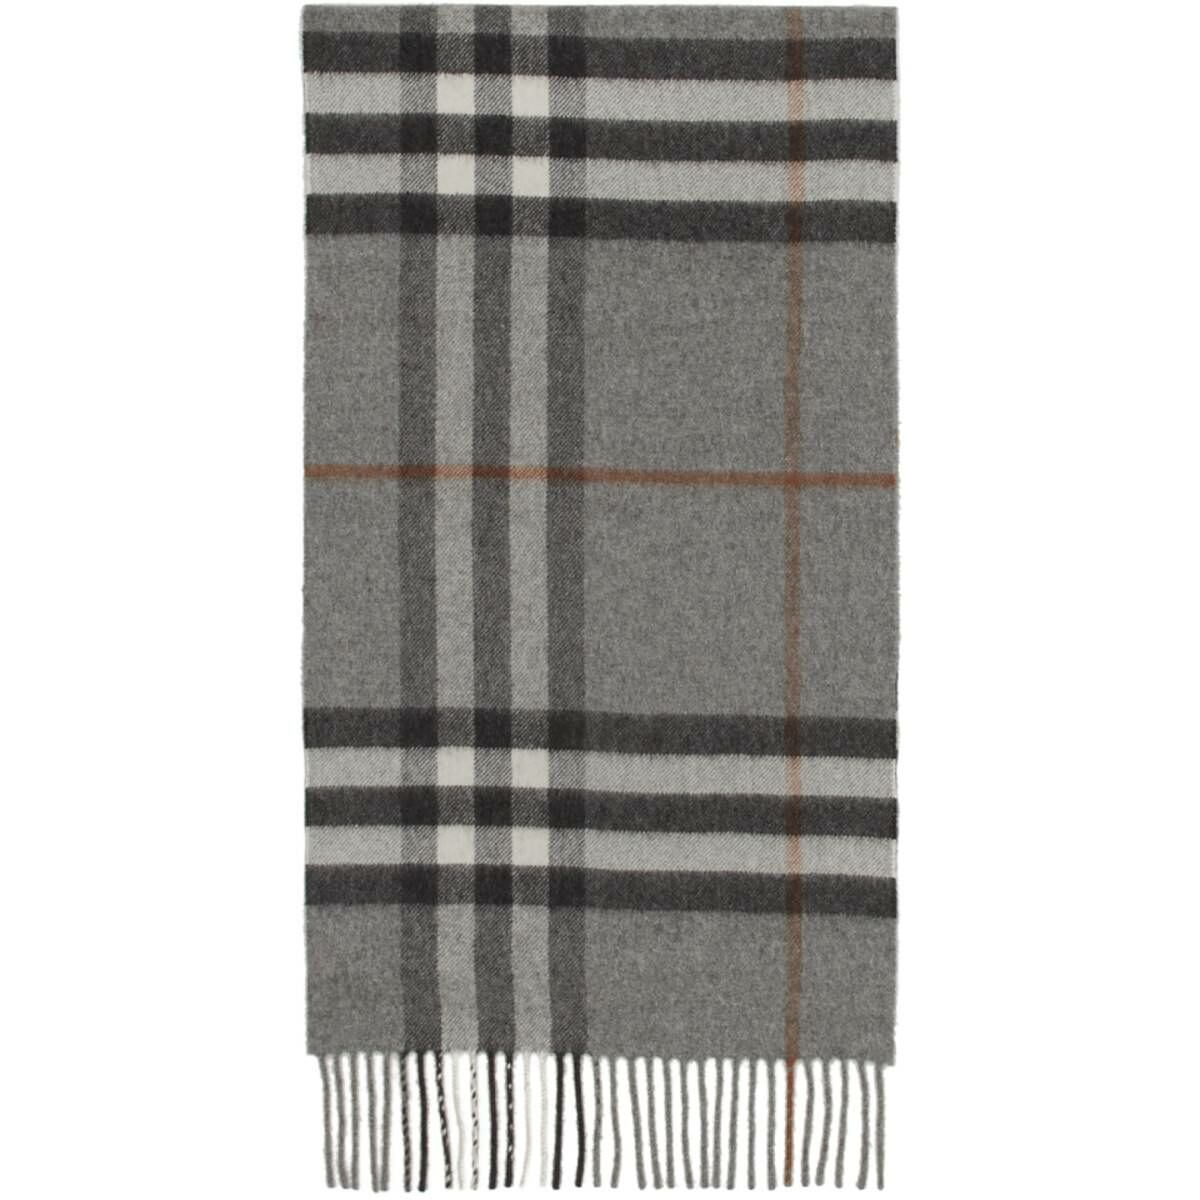 Burberry Grey Cashmere Classic Check Scarf Ssense USA MEN Men ACCESSORIES Mens SCARFS